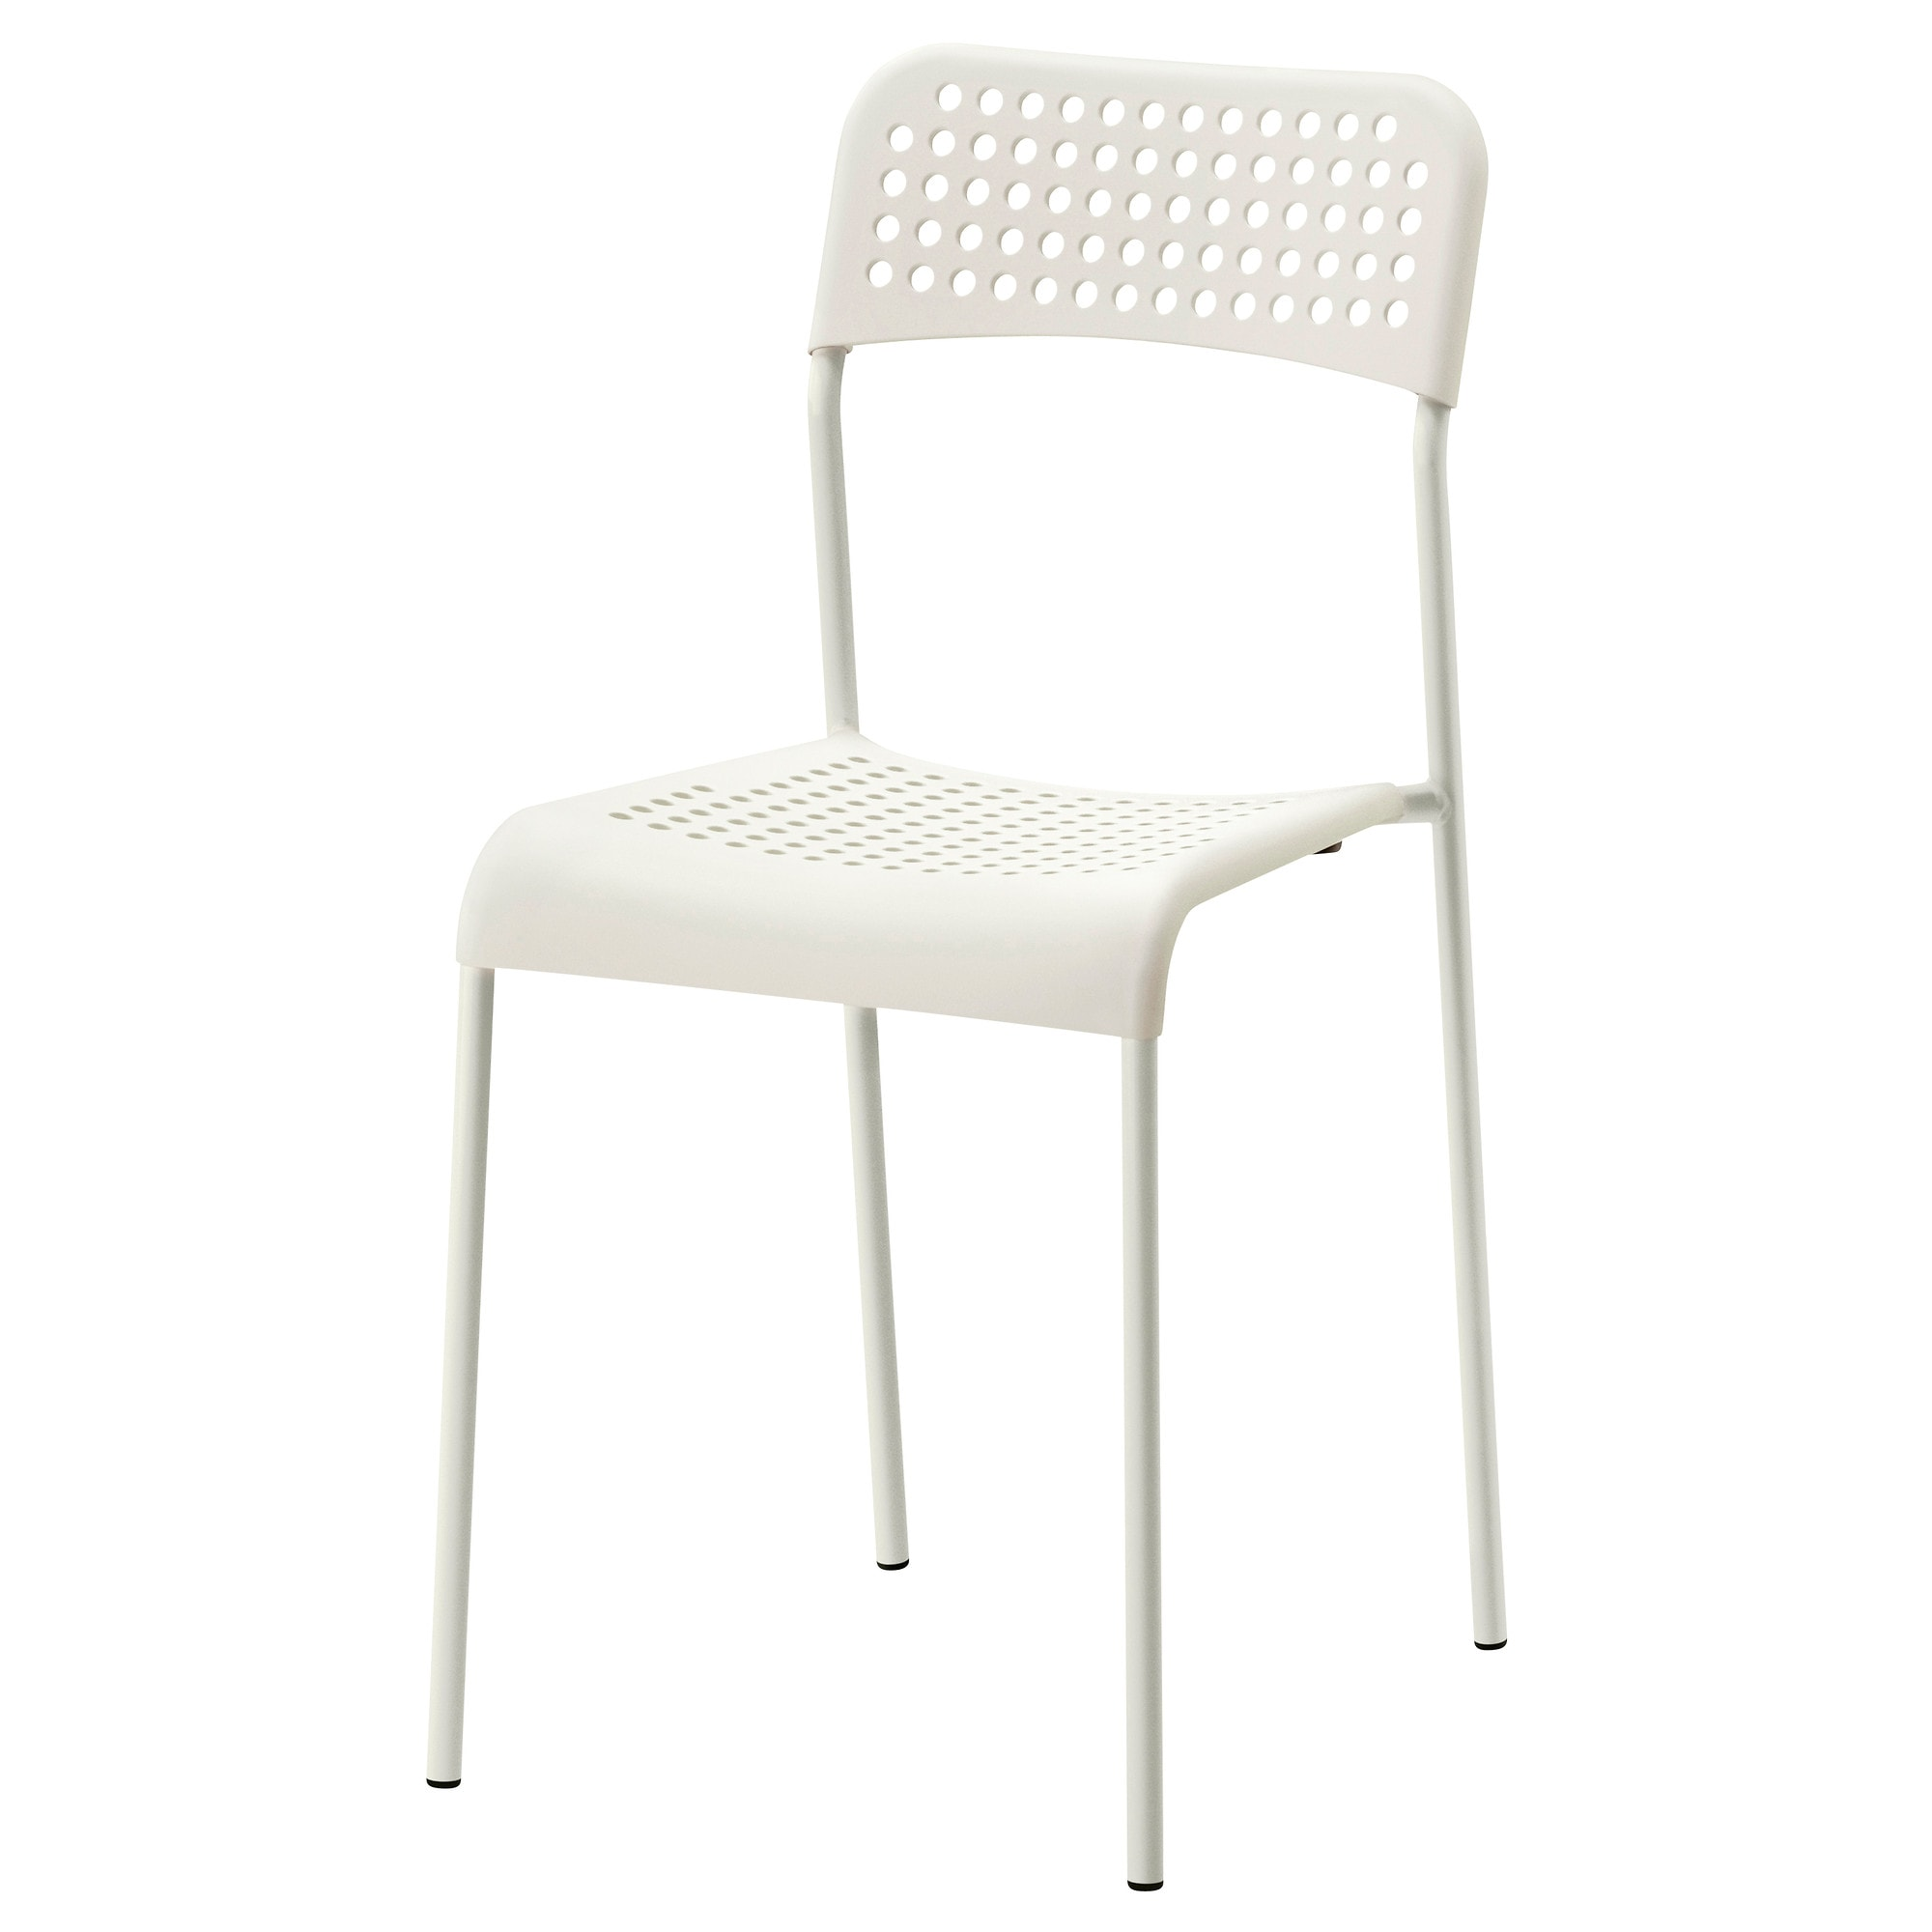 Black chair and white chair - Adde Chair White Tested For 243 Lb Width 15 3 8